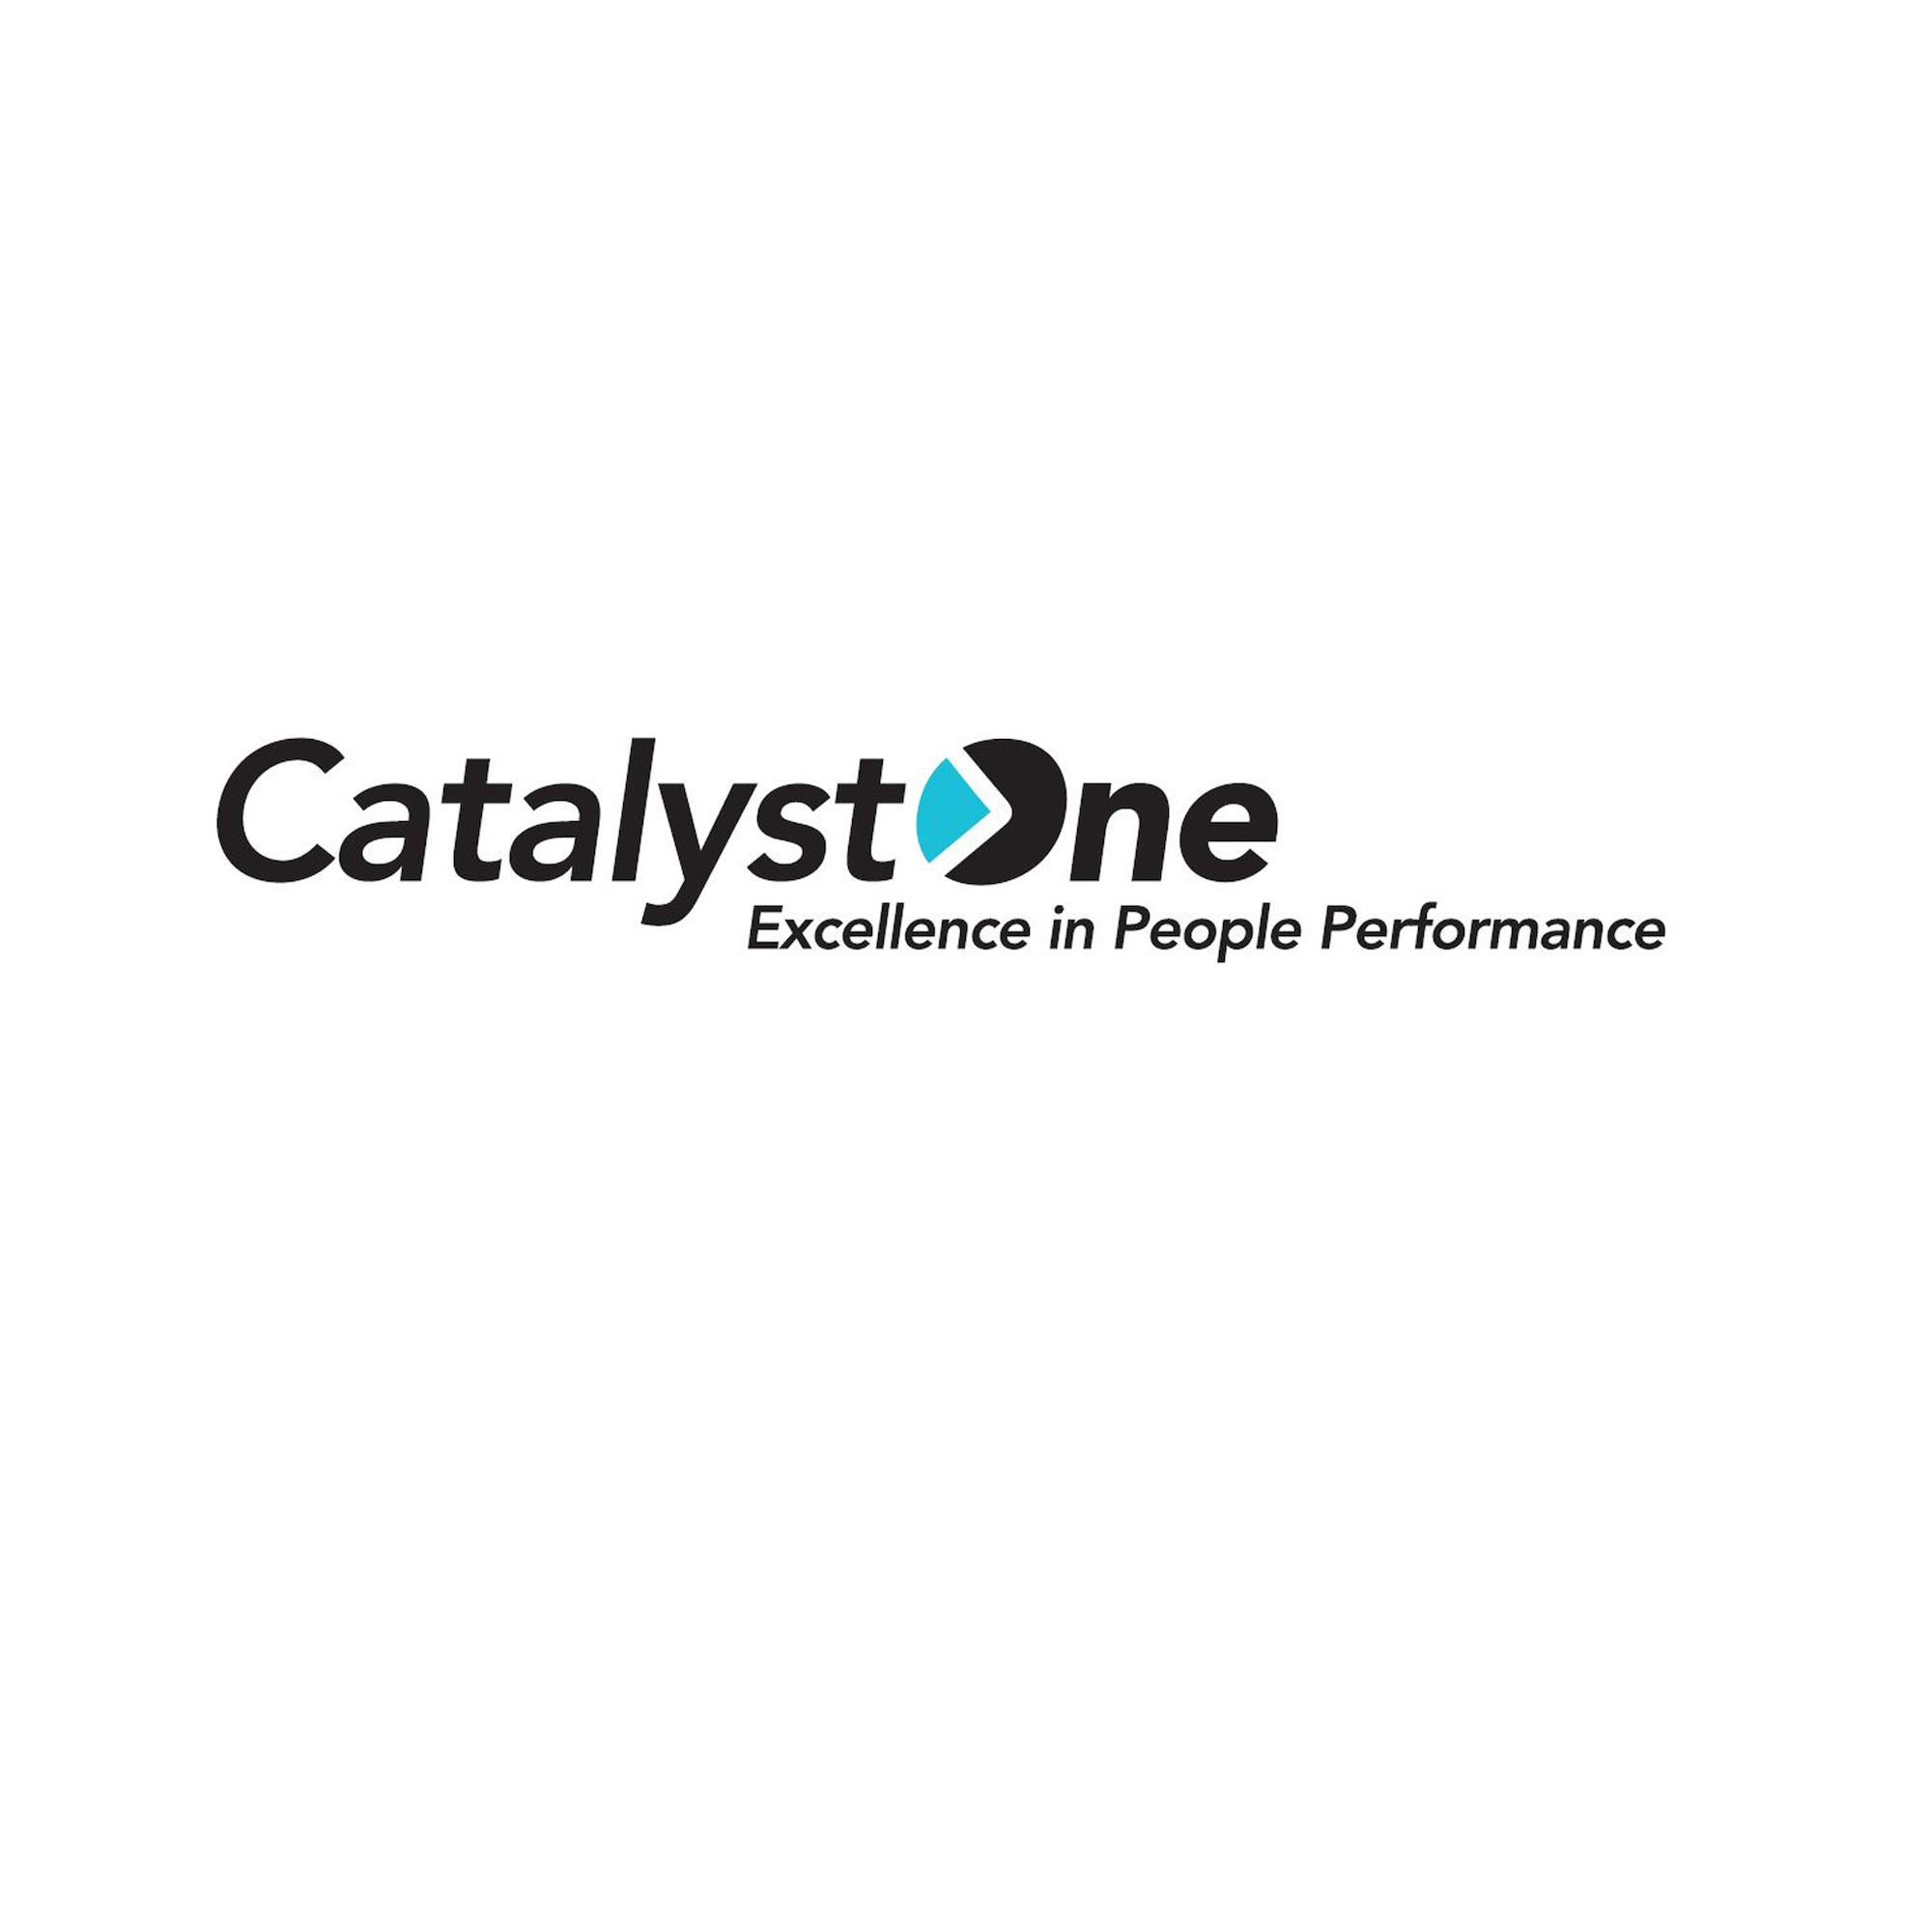 Catalyst One